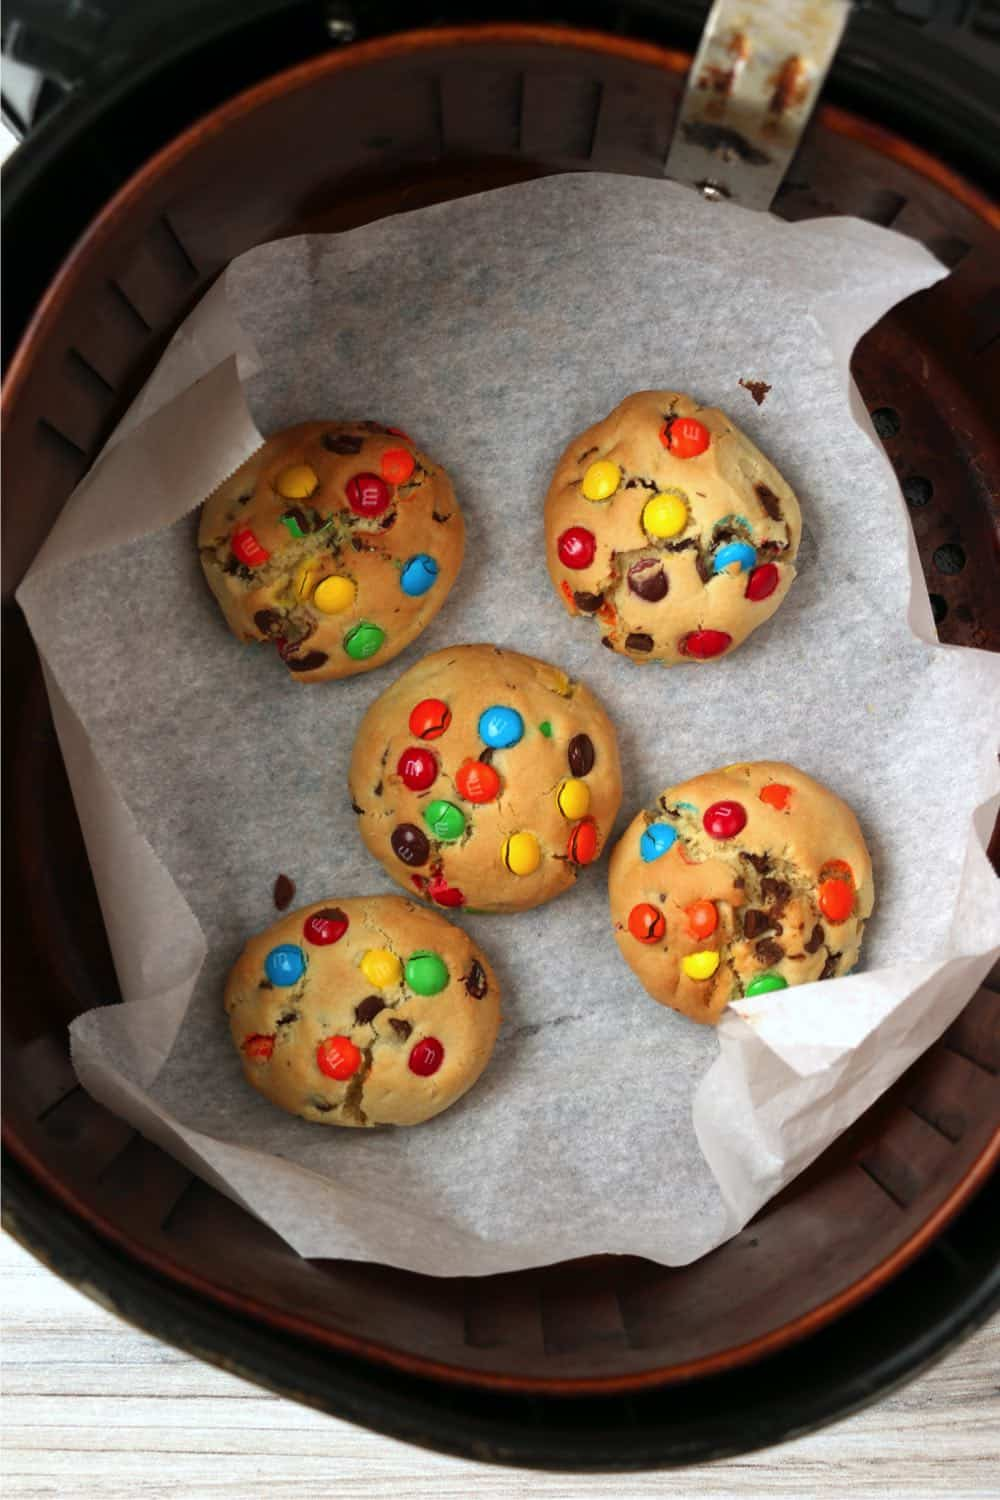 baked monster cookies still in the air fryer